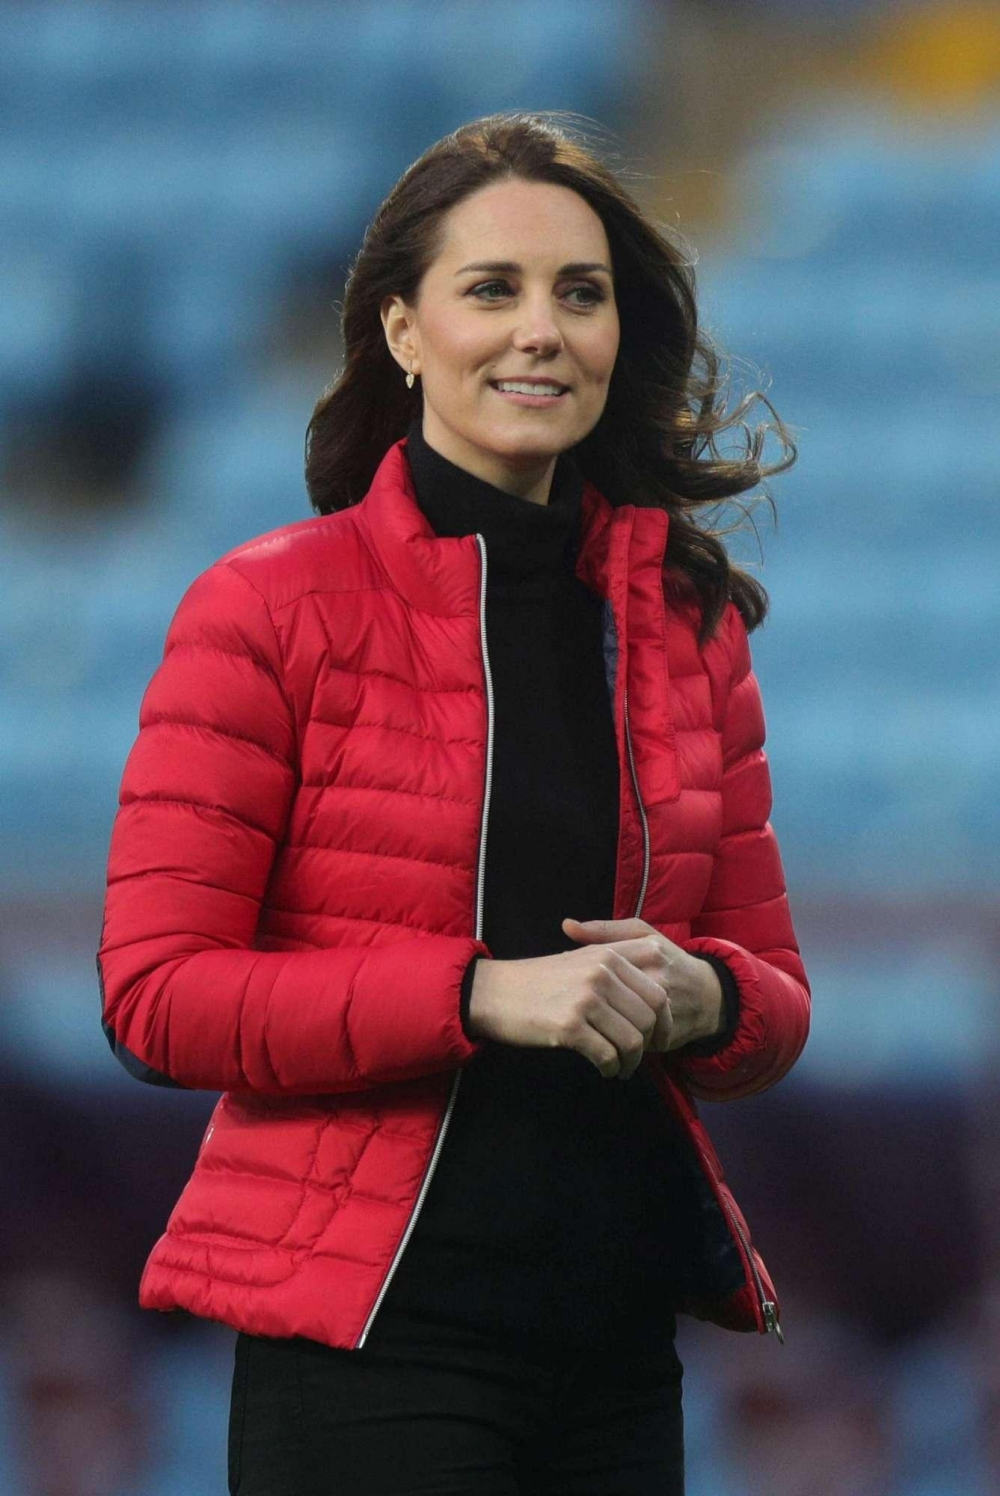 Kate Middleton mette in evidenza il suo pancino